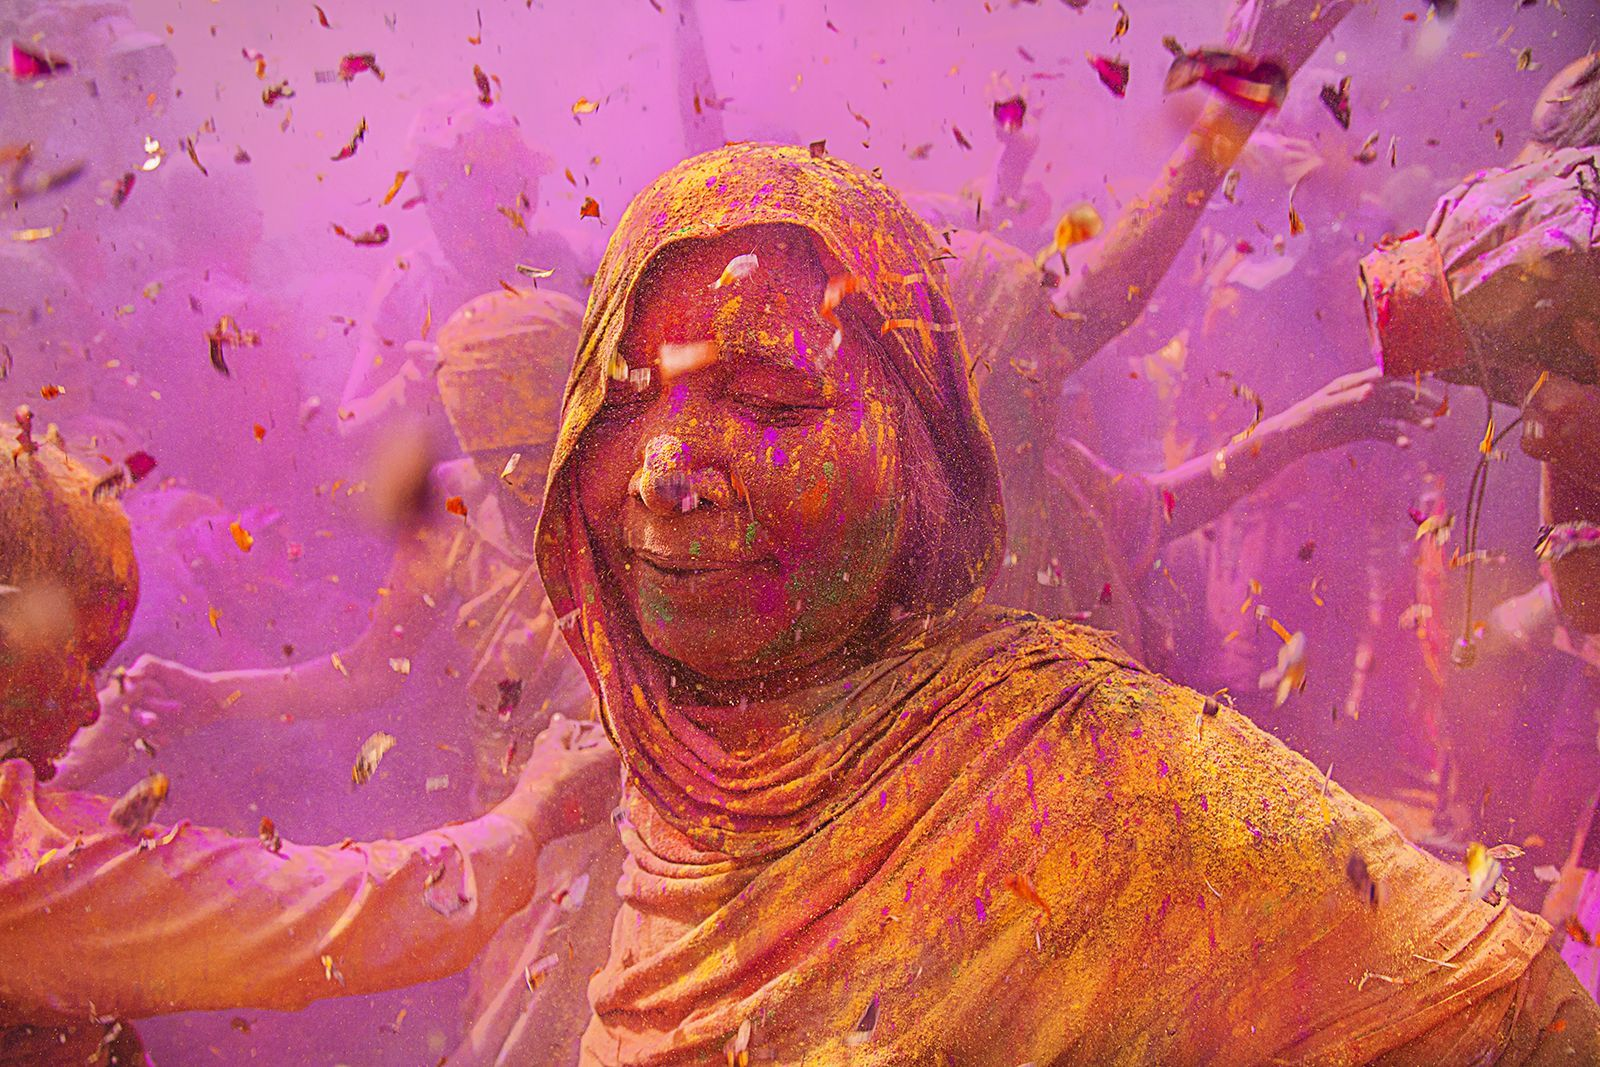 "During a Holi festival in India, a woman savors the colorful celebration. Holi is an annual Hindu festival that celebrates the end of winter and the coming of spring. Participants spray each other with water and colored powders, and also enjoy singing, dancing, and exchanging sweets. Your Shot photographer Lopamudra Talukdar says of women enjoying the festivities, ""The spirit is up and the guard is down."""